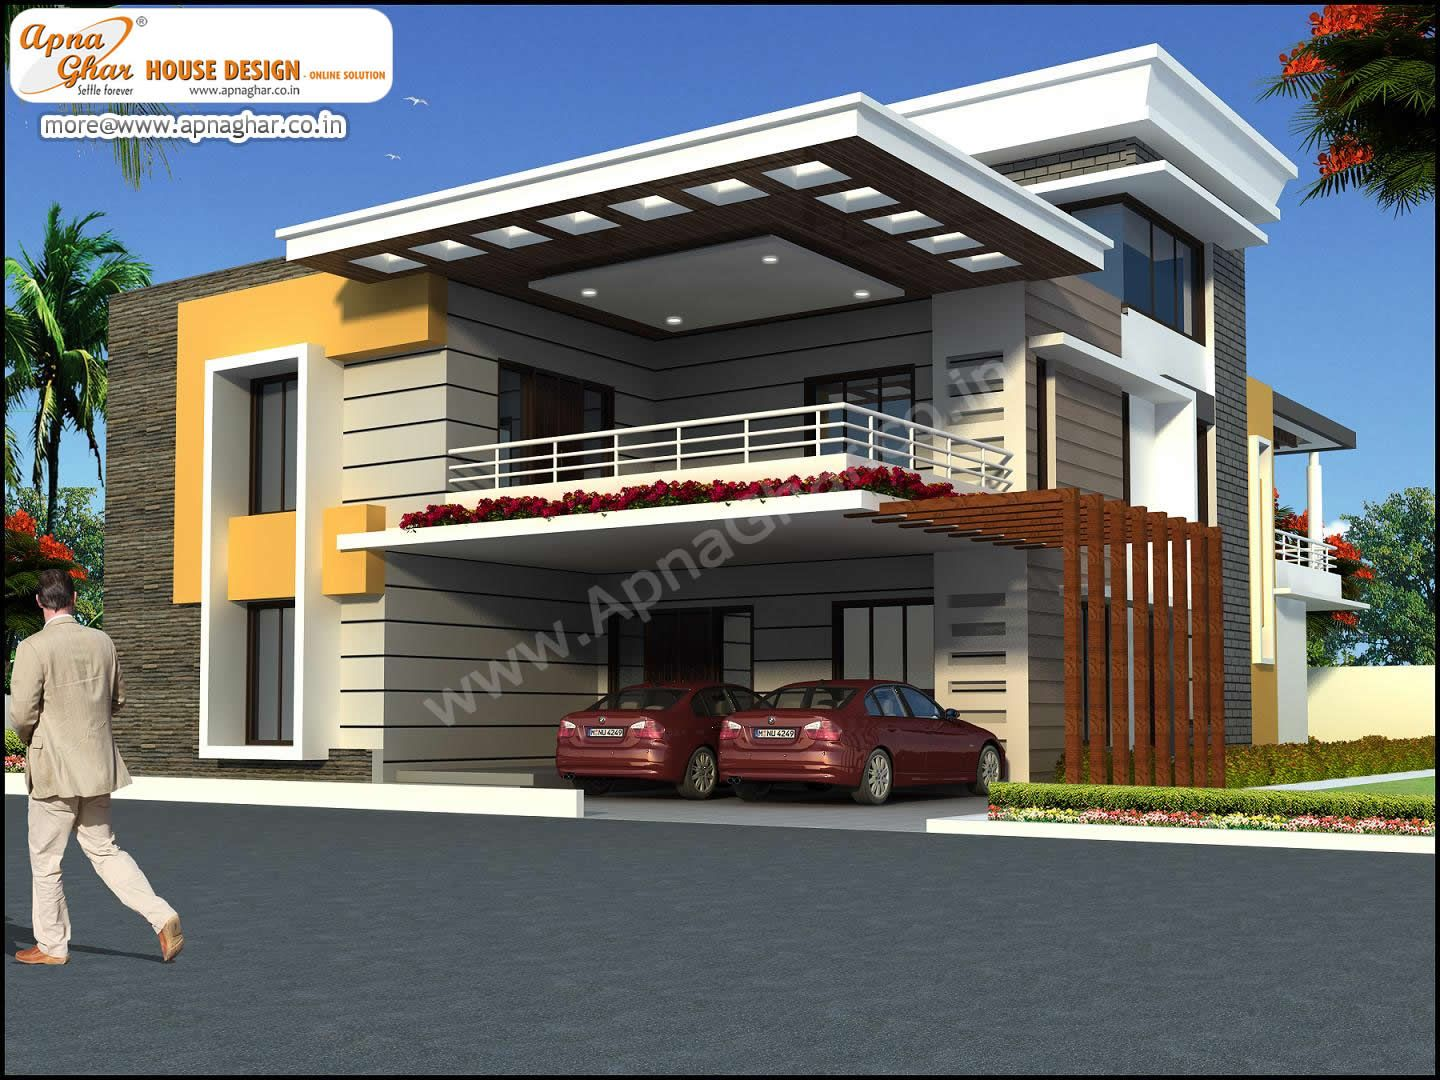 Modern house design 2017 of 33 beautiful 2 storey house photos gallery - 5 Bedroom Duplex 2 Floors House Design Area 450m2 18m